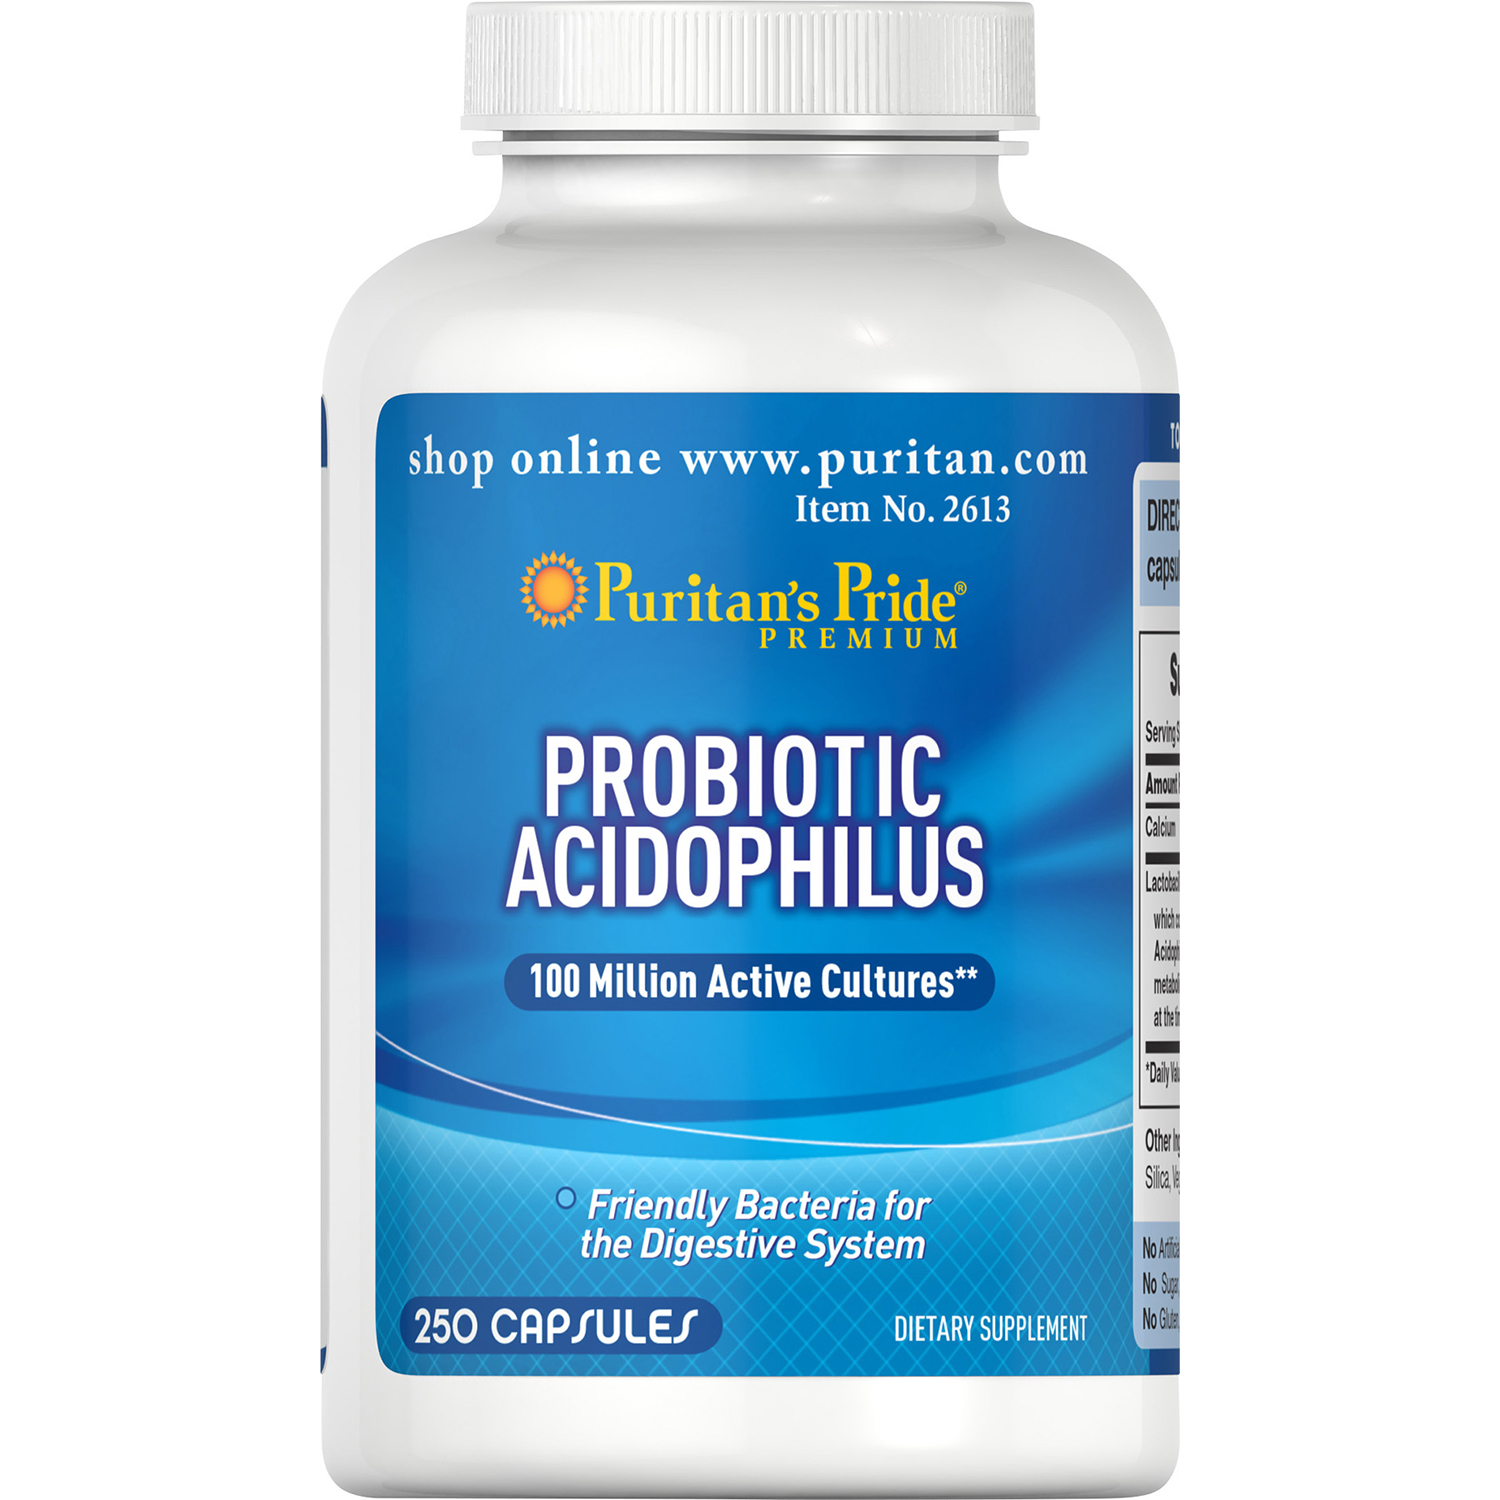 Puritan's Pride Nature's Promise Probiotic Supplement, Acidophilus, 250 Count